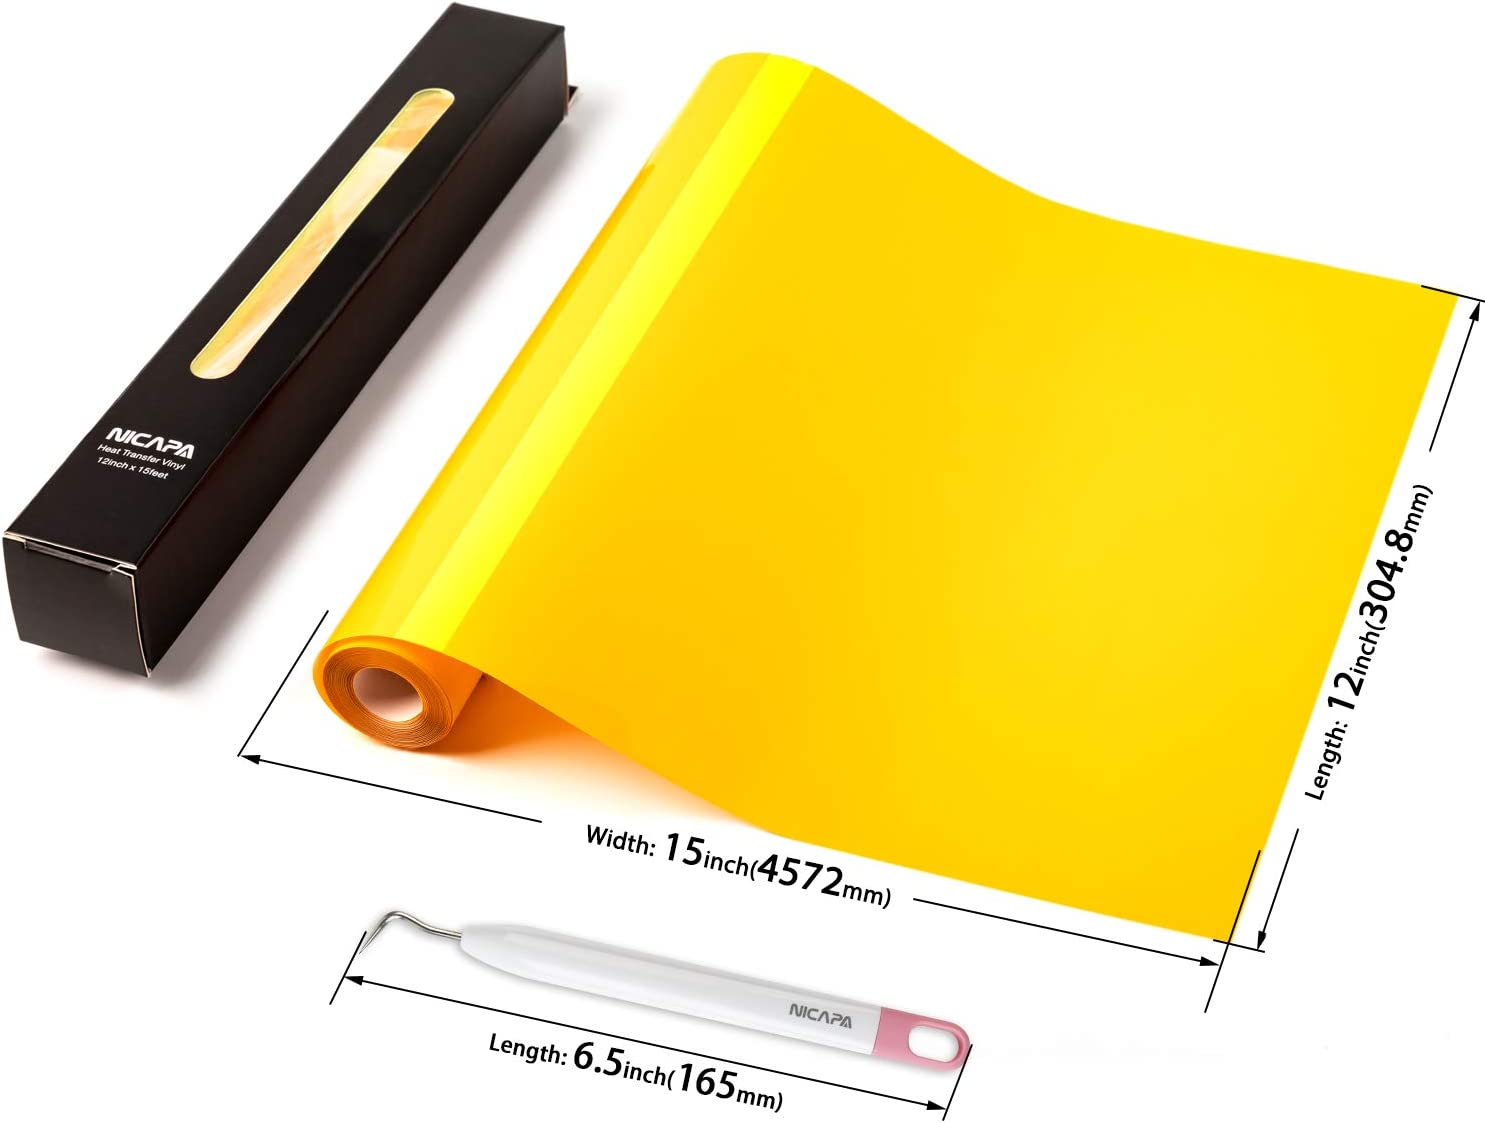 Nicapa HTV Vinyl Yellow Roll 12inch x 15feet Iron on Heat Transfer Vinyl Roll Bundle for Silhouette//Cricut//Brother//Easy to Weed Iron-on Heat Press T Shirts Garments Stencil Vinyl